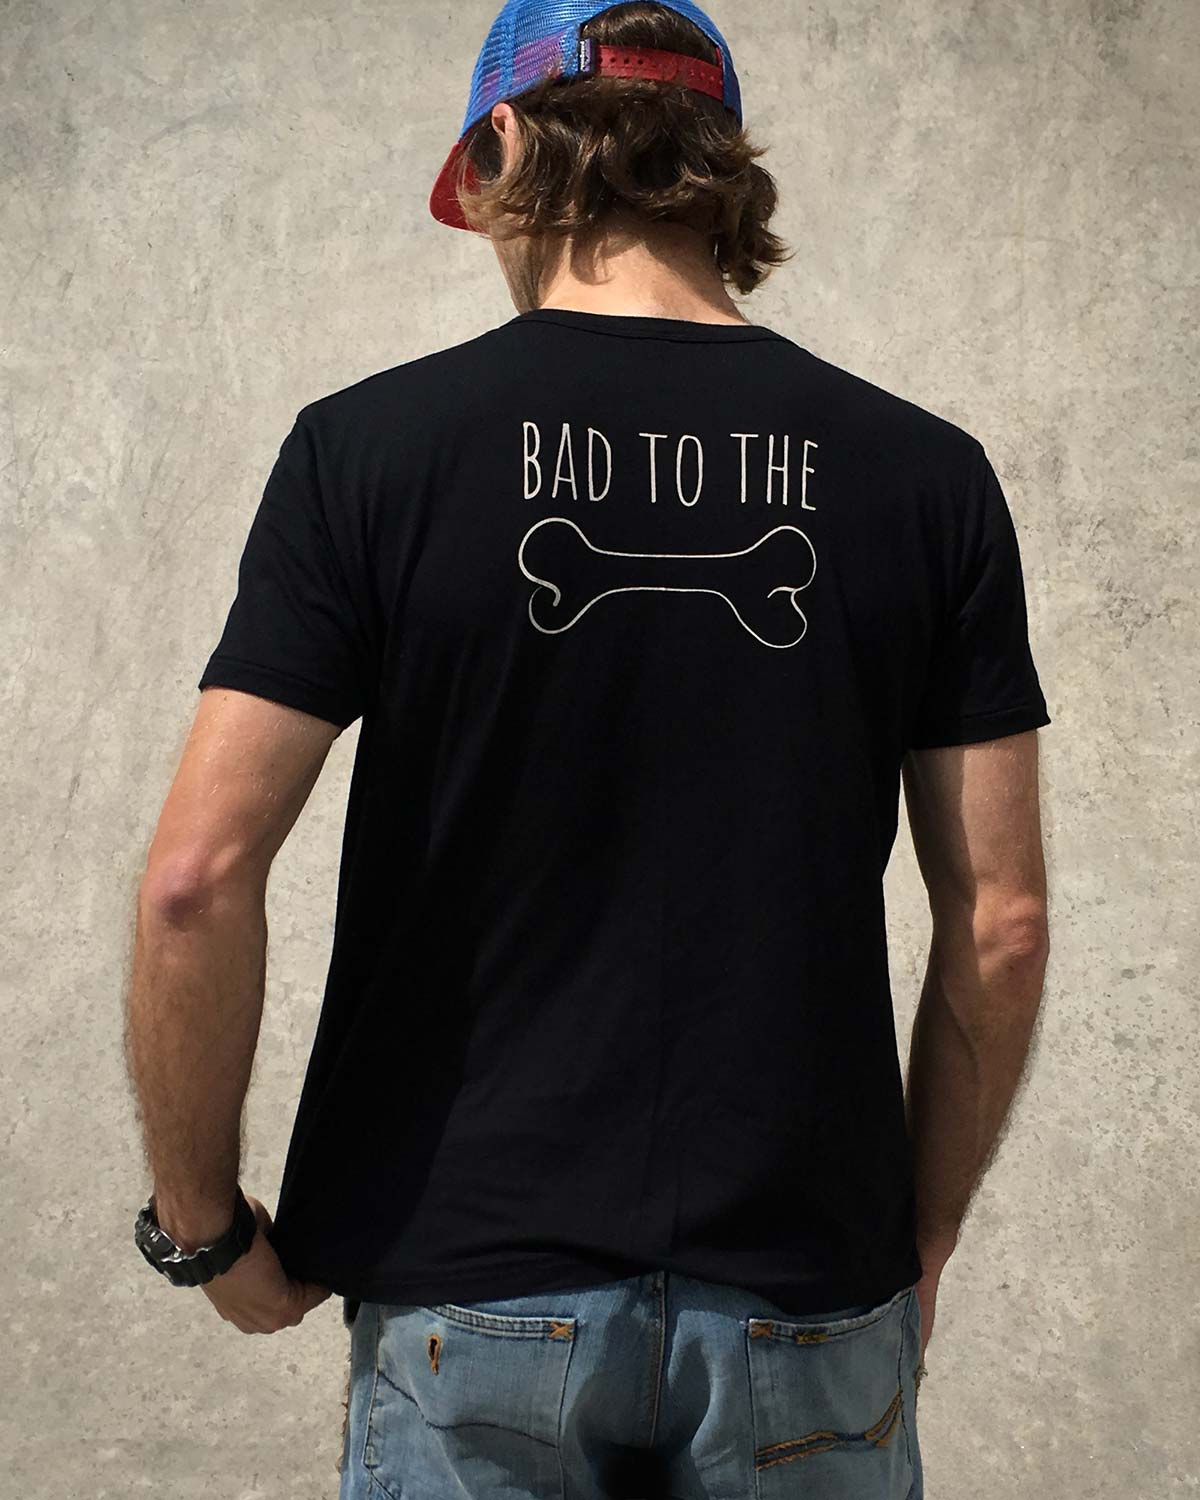 RideGuard Dirt Punks Bad To The Bone T-Shirt Tee